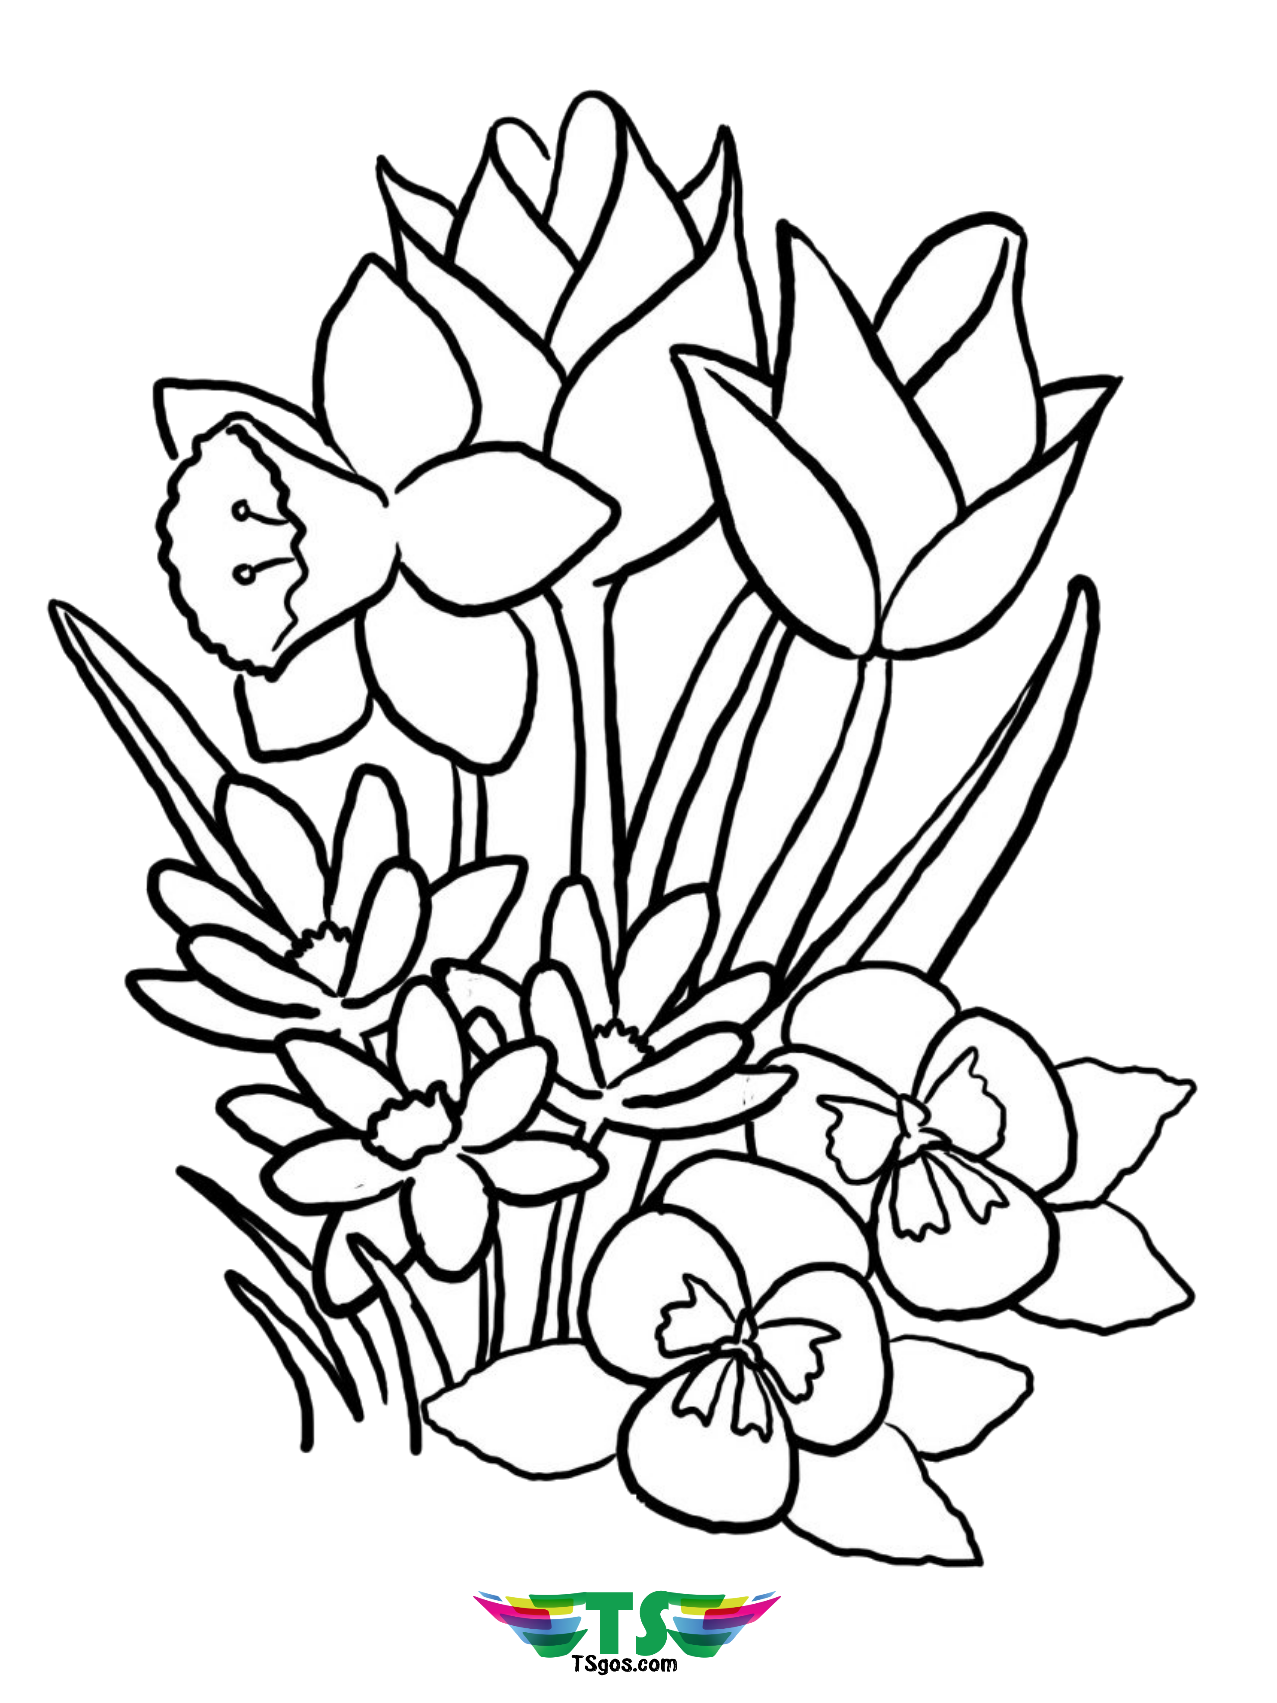 coloring page of a flower coloring town coloring of flower a page